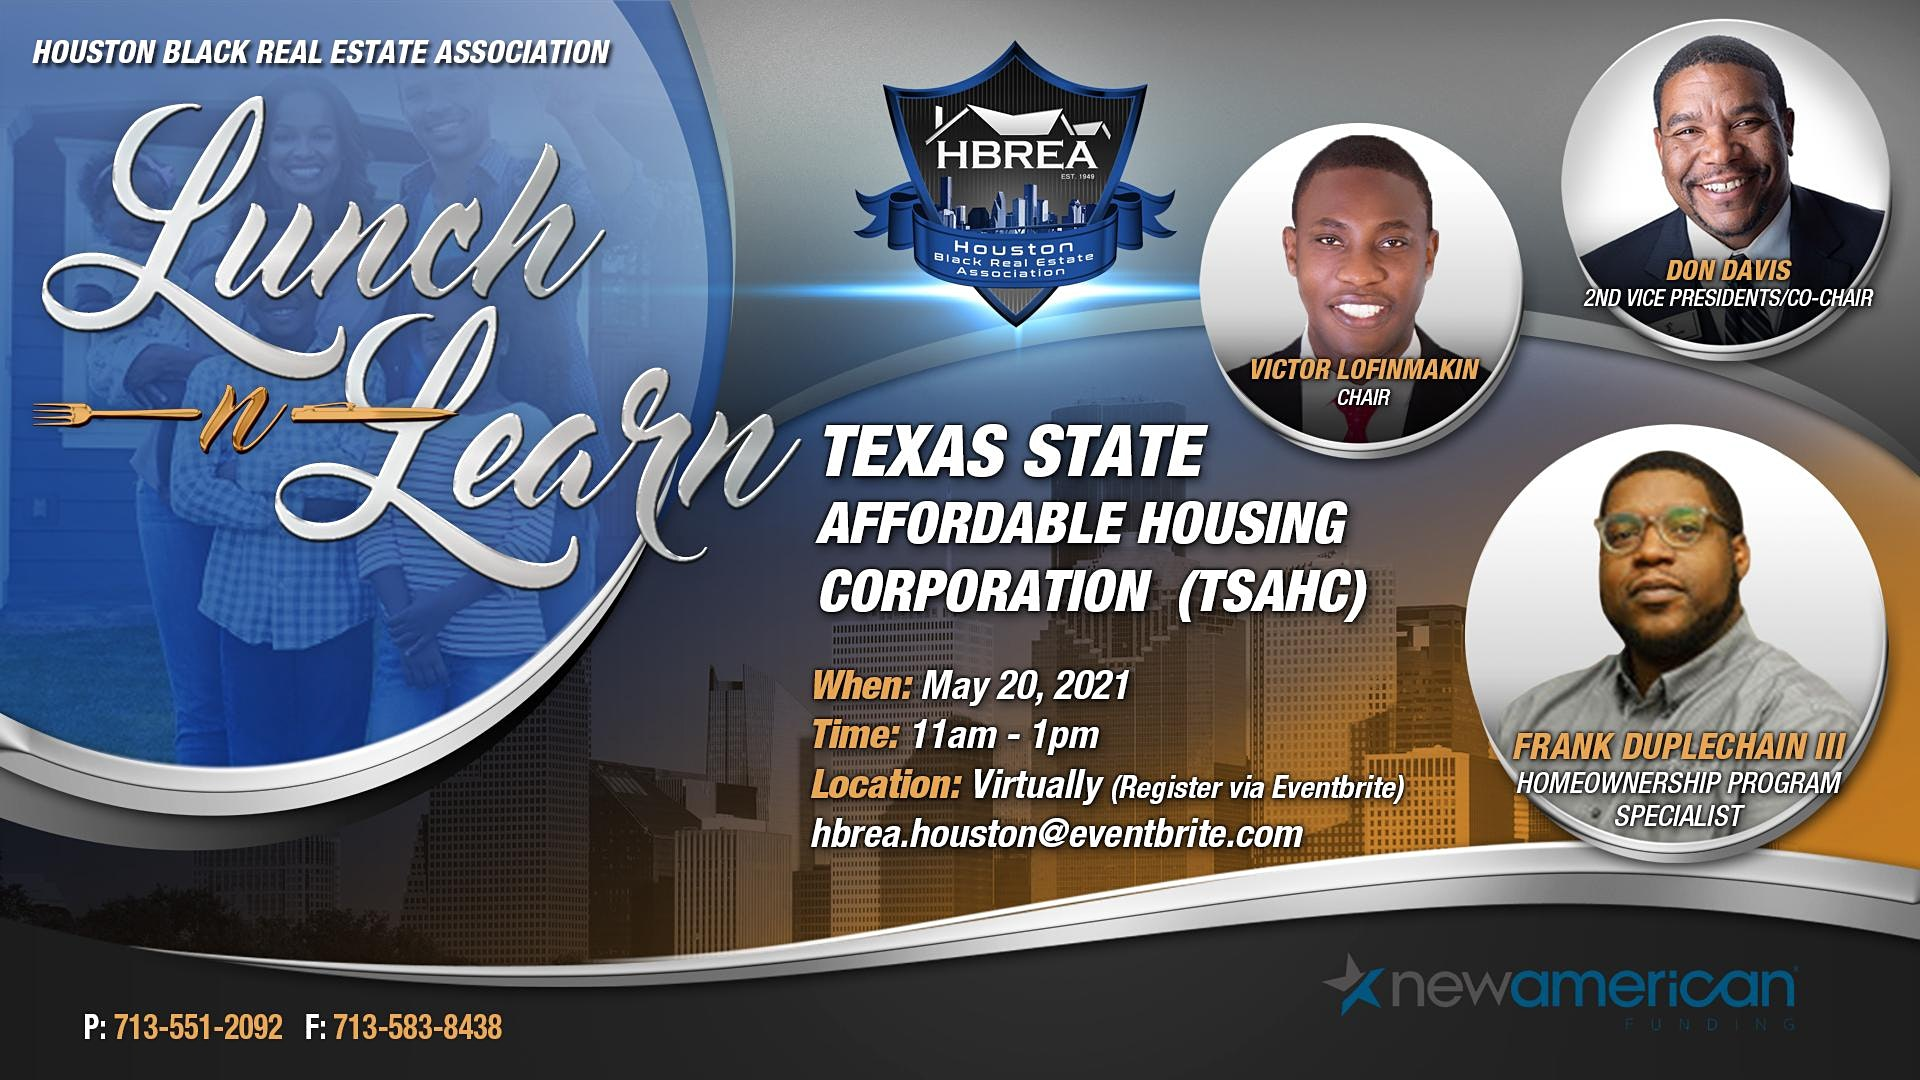 Lunch-N-Learn - Texas State Affordable Housing Corporation, Victor Lofinmakin, Don Davis, and Frank Duplechain III